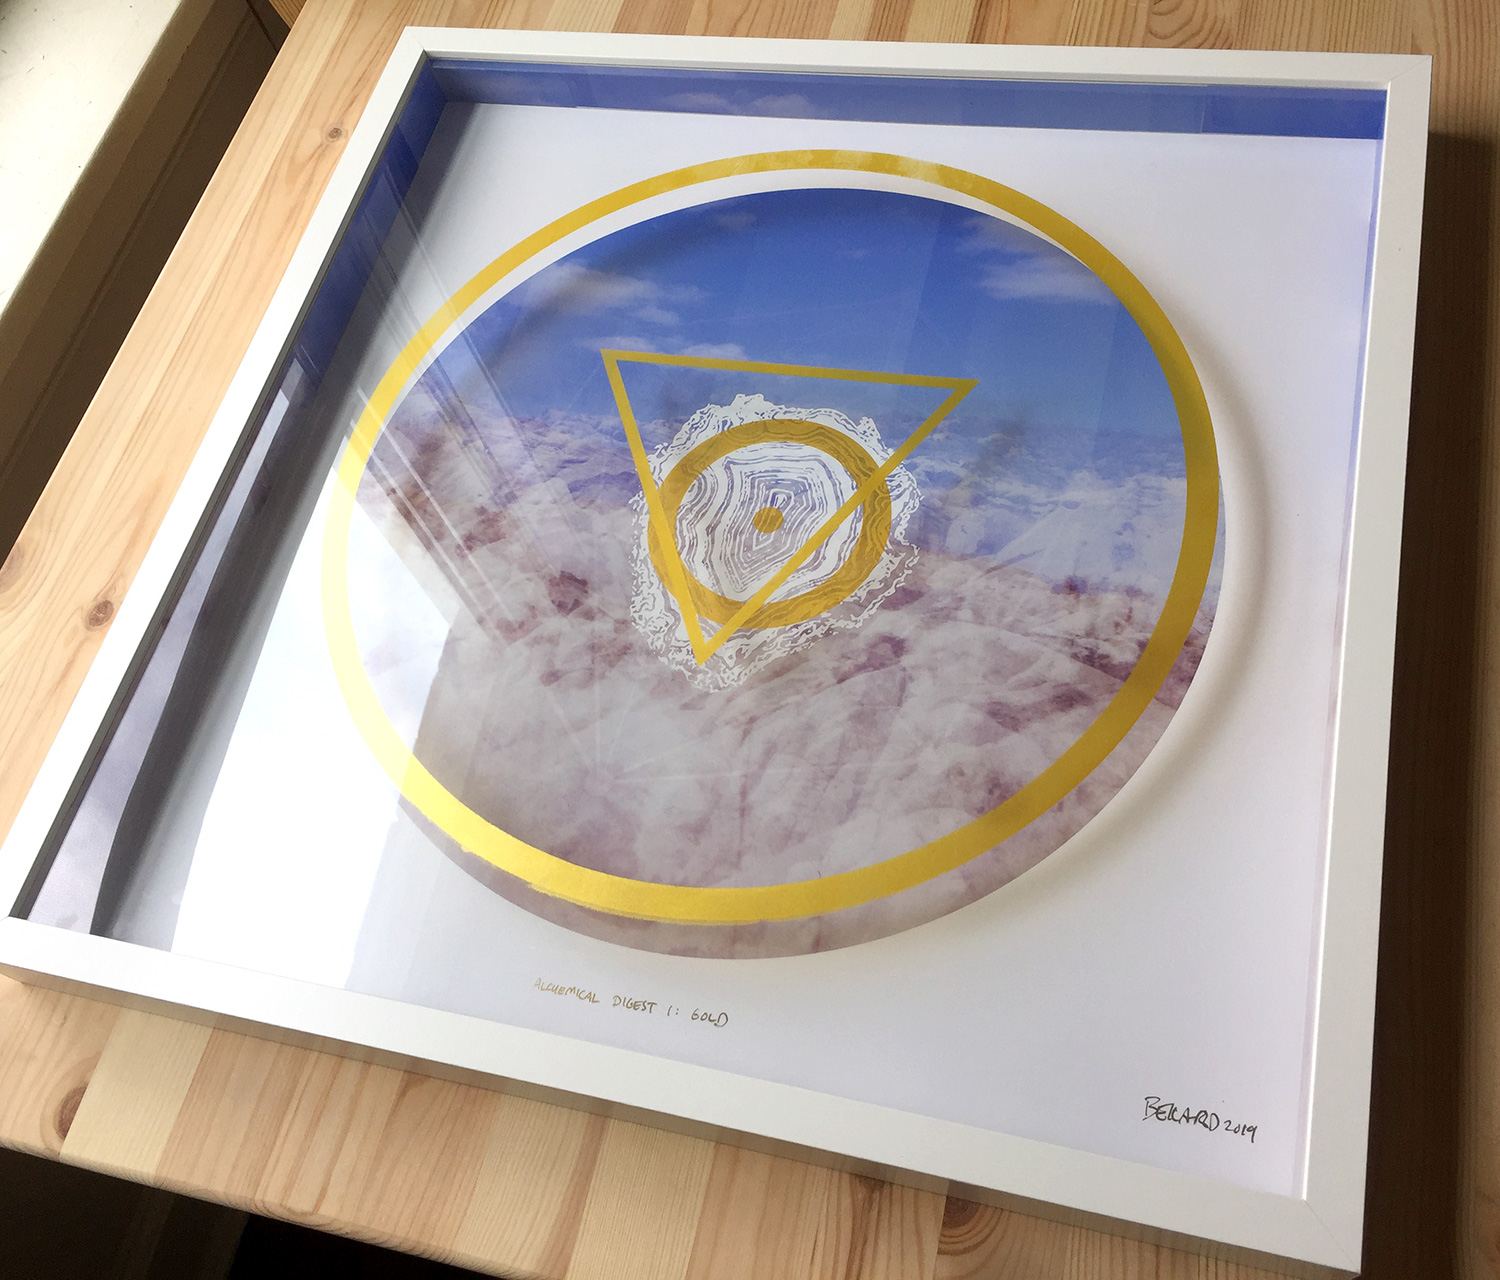 "ALCHEMICAL DIGEST 1: GOLD   •      20"" x 20"" x 2"" • SILKSCREEN ON PHOTO AND ACRYLIC, IN SHADOWBOX • 2019"